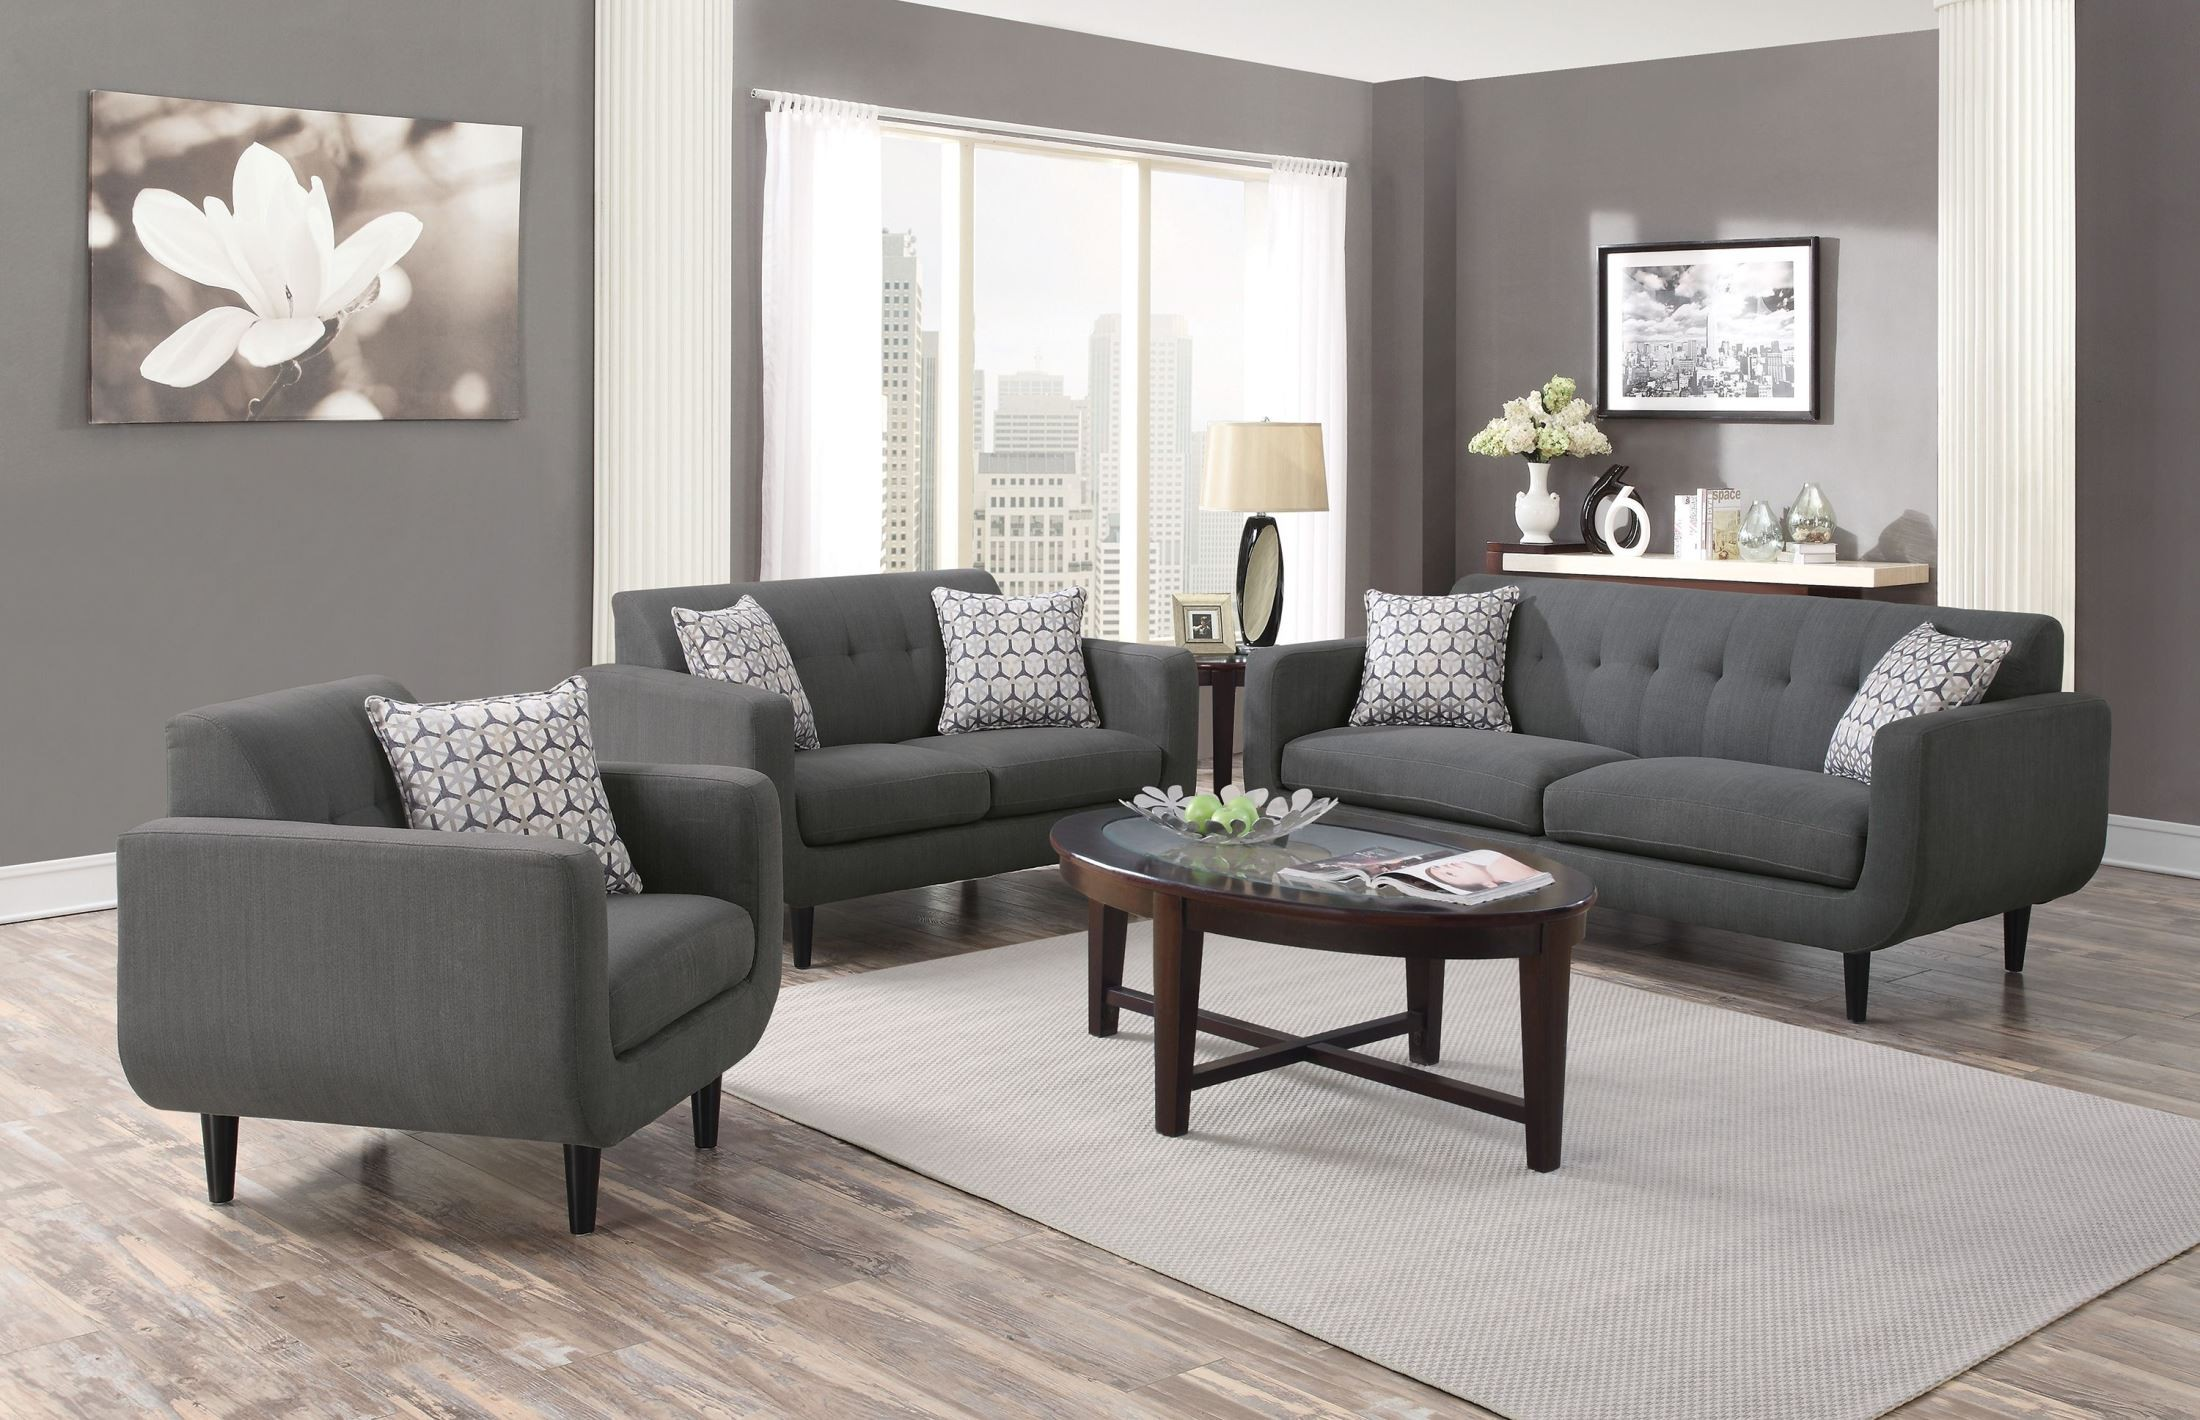 stansall grey living room set 505201 coaster